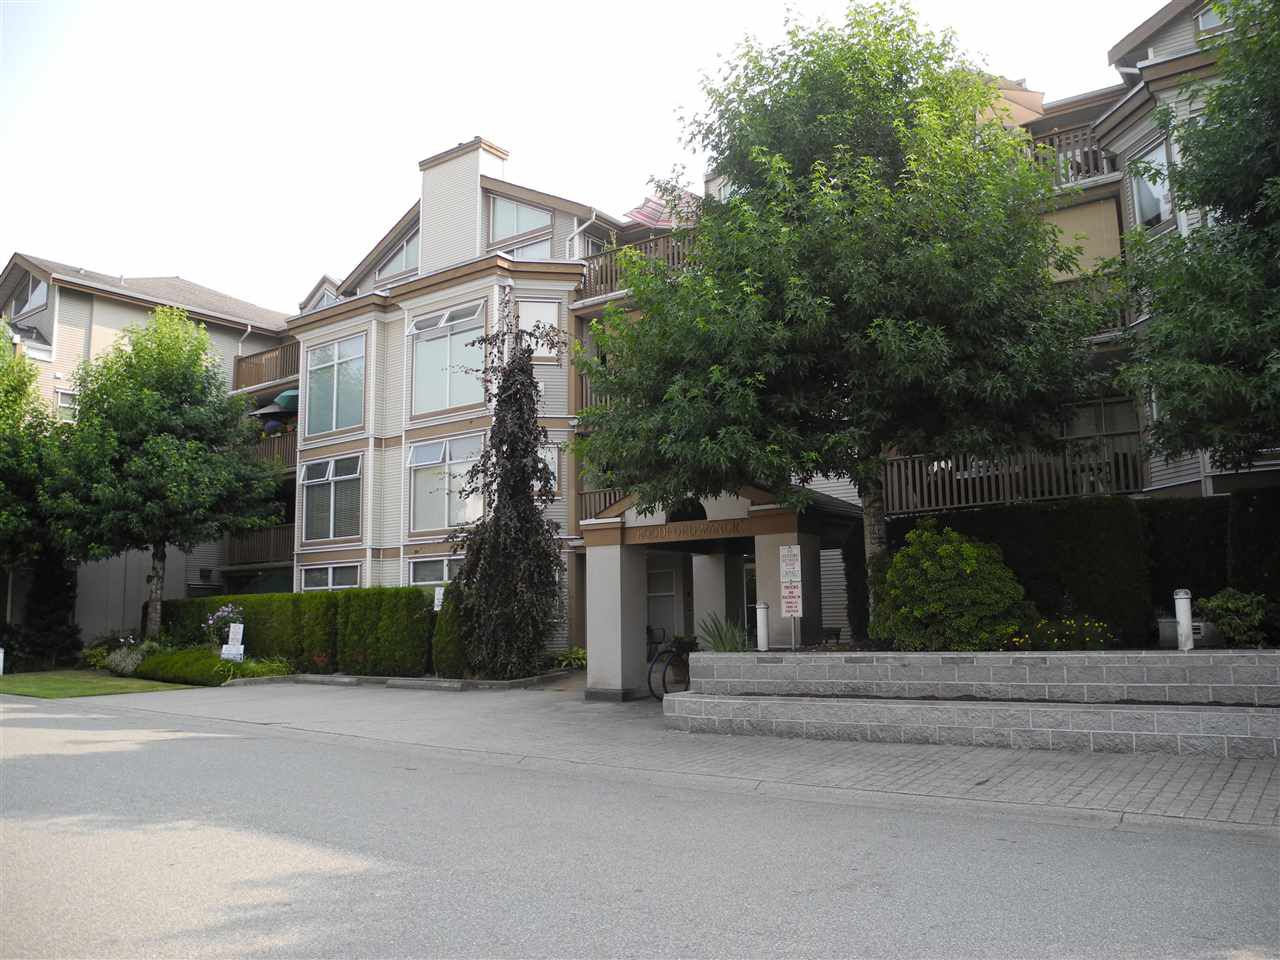 """Main Photo: 206 19131 FORD Road in Pitt Meadows: Central Meadows Condo for sale in """"WOODFORD MANOR"""" : MLS®# R2296738"""